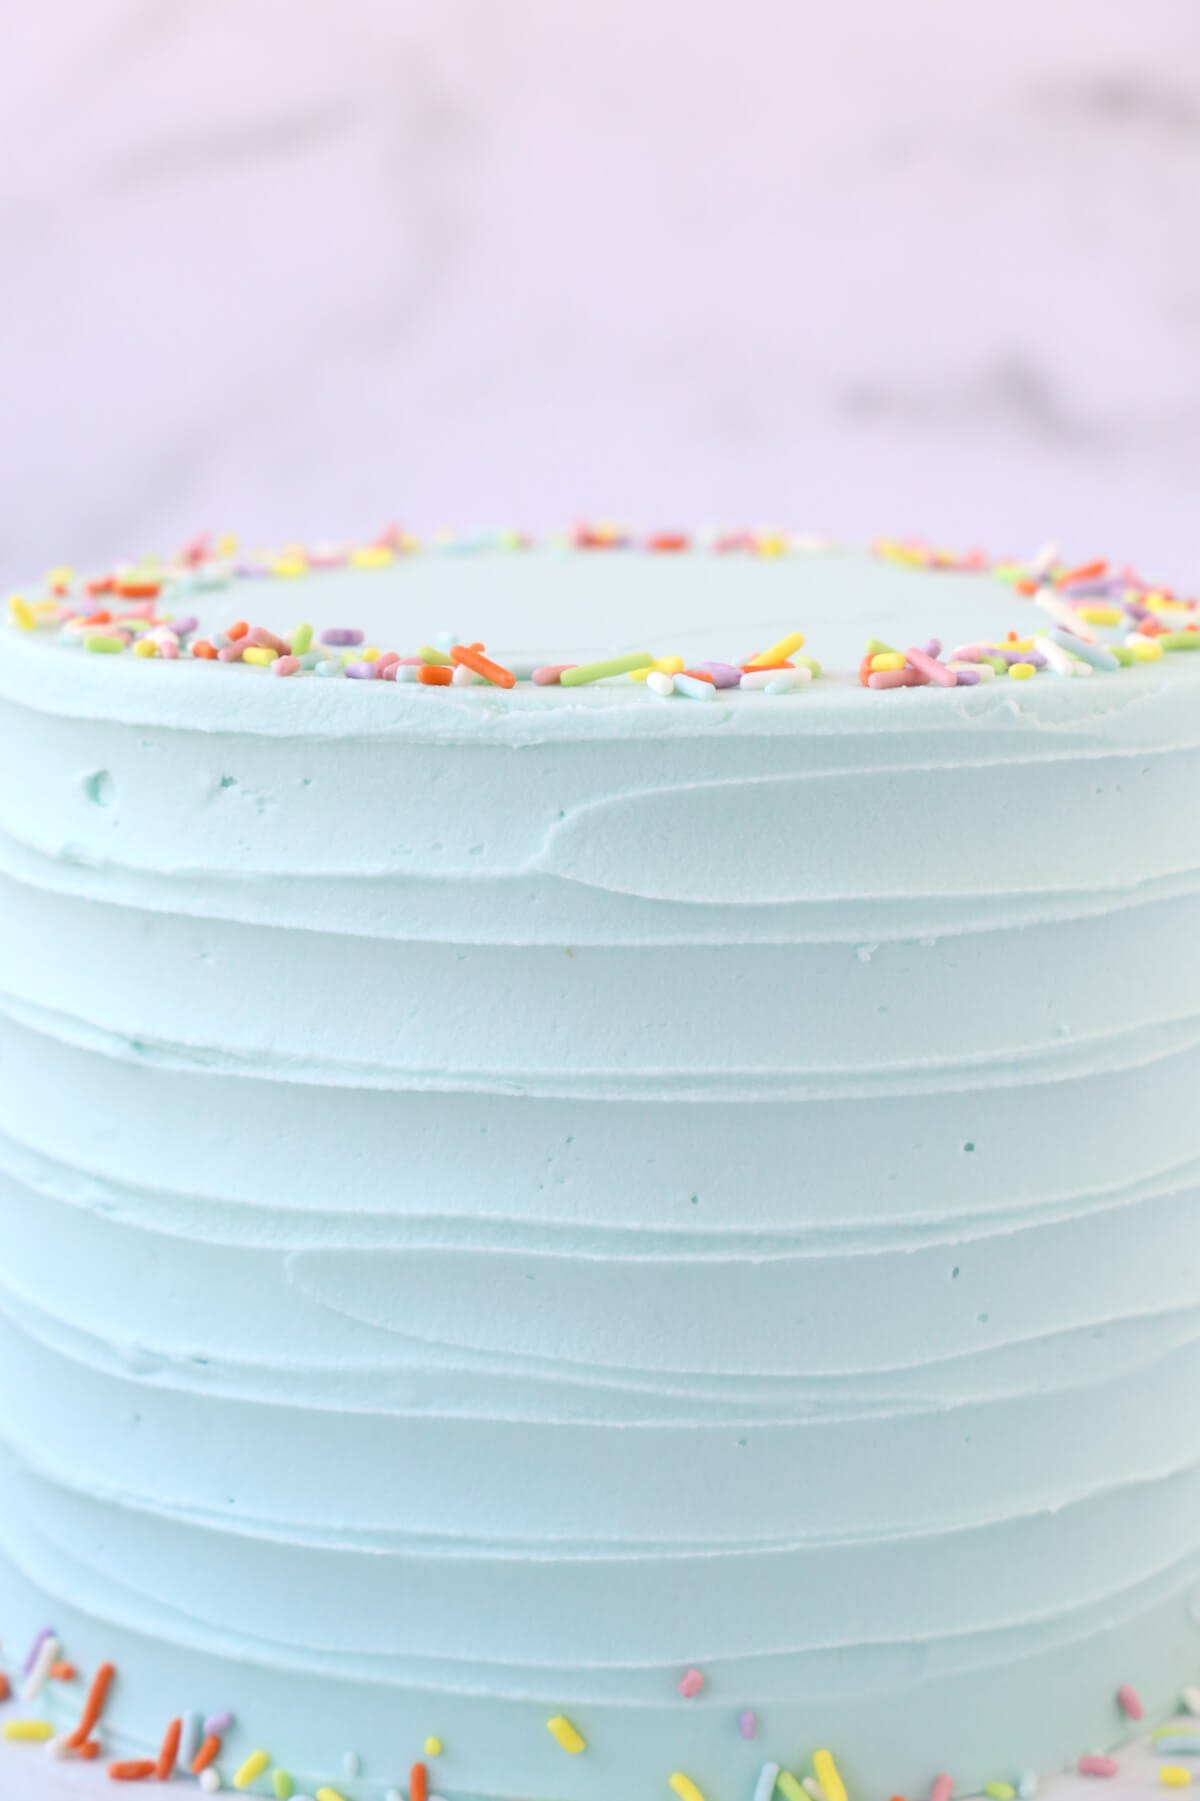 a close up of a cake with light turquoise frosting and rainbow sprinkles